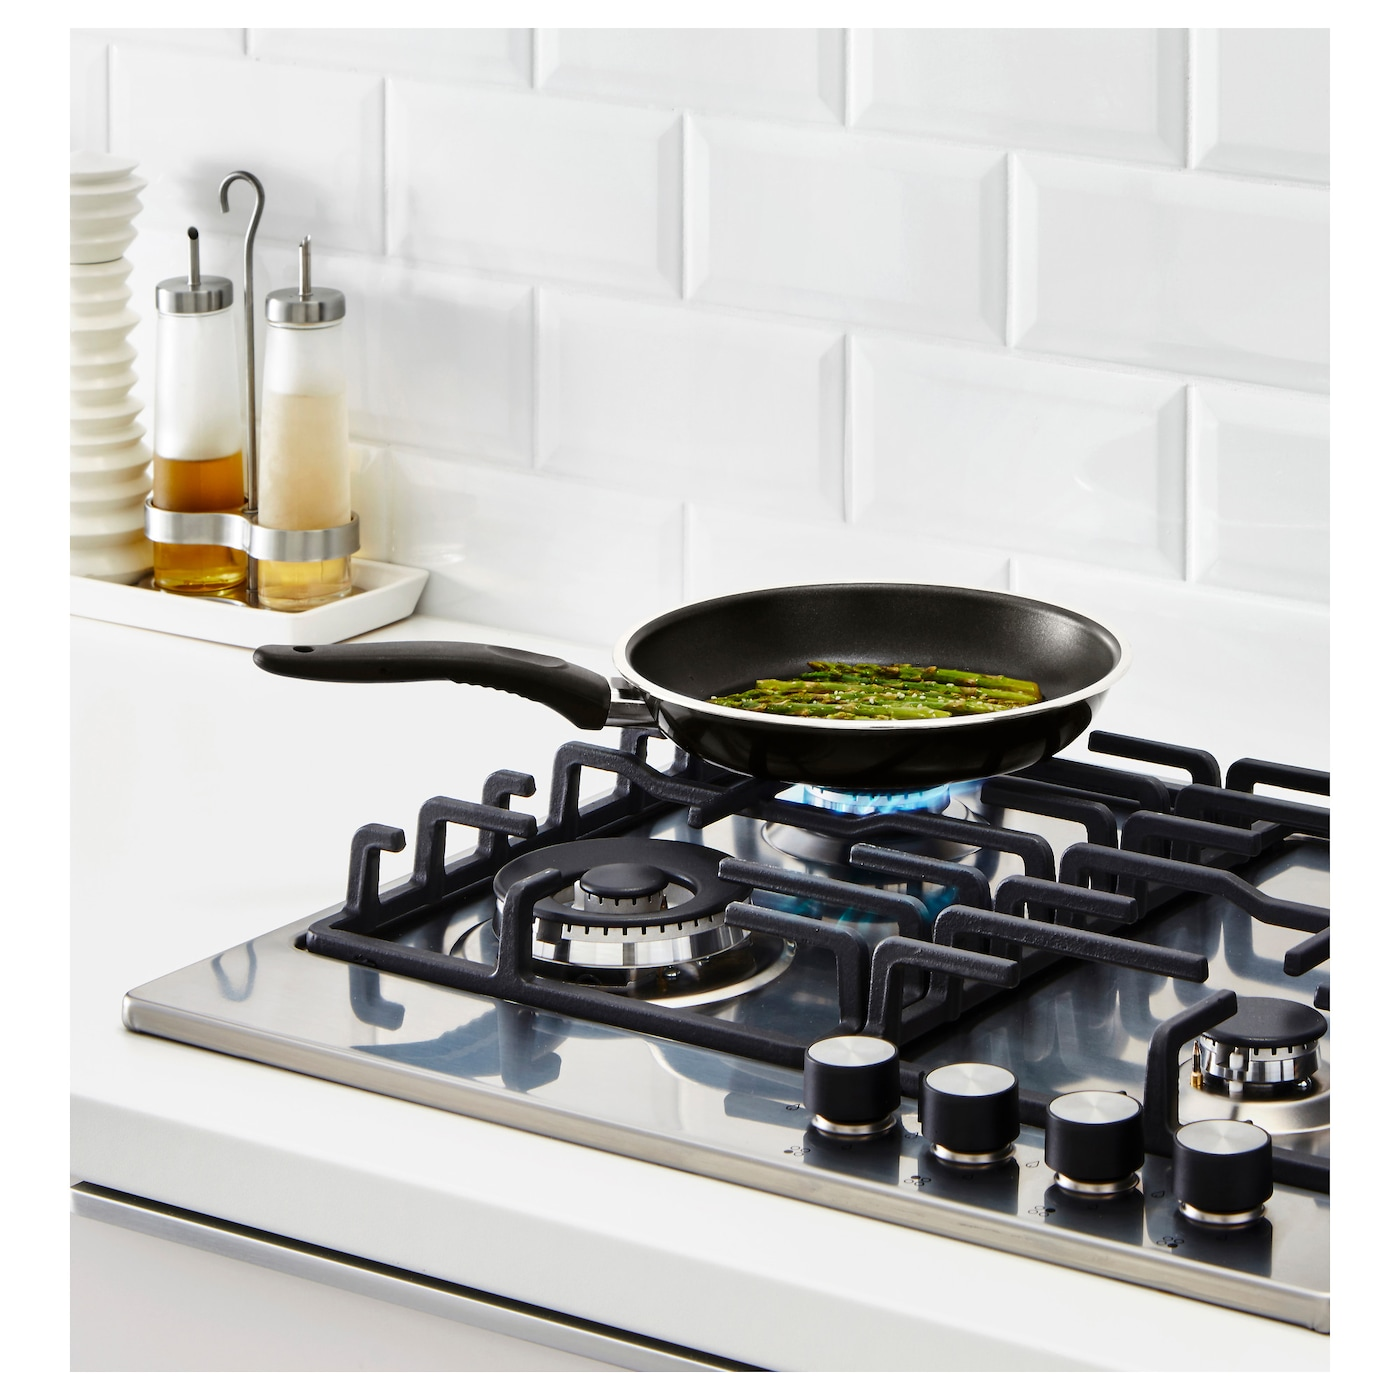 IKEA KAVALKAD frying pan The pan's low weight makes it easy to handle when filled with food.